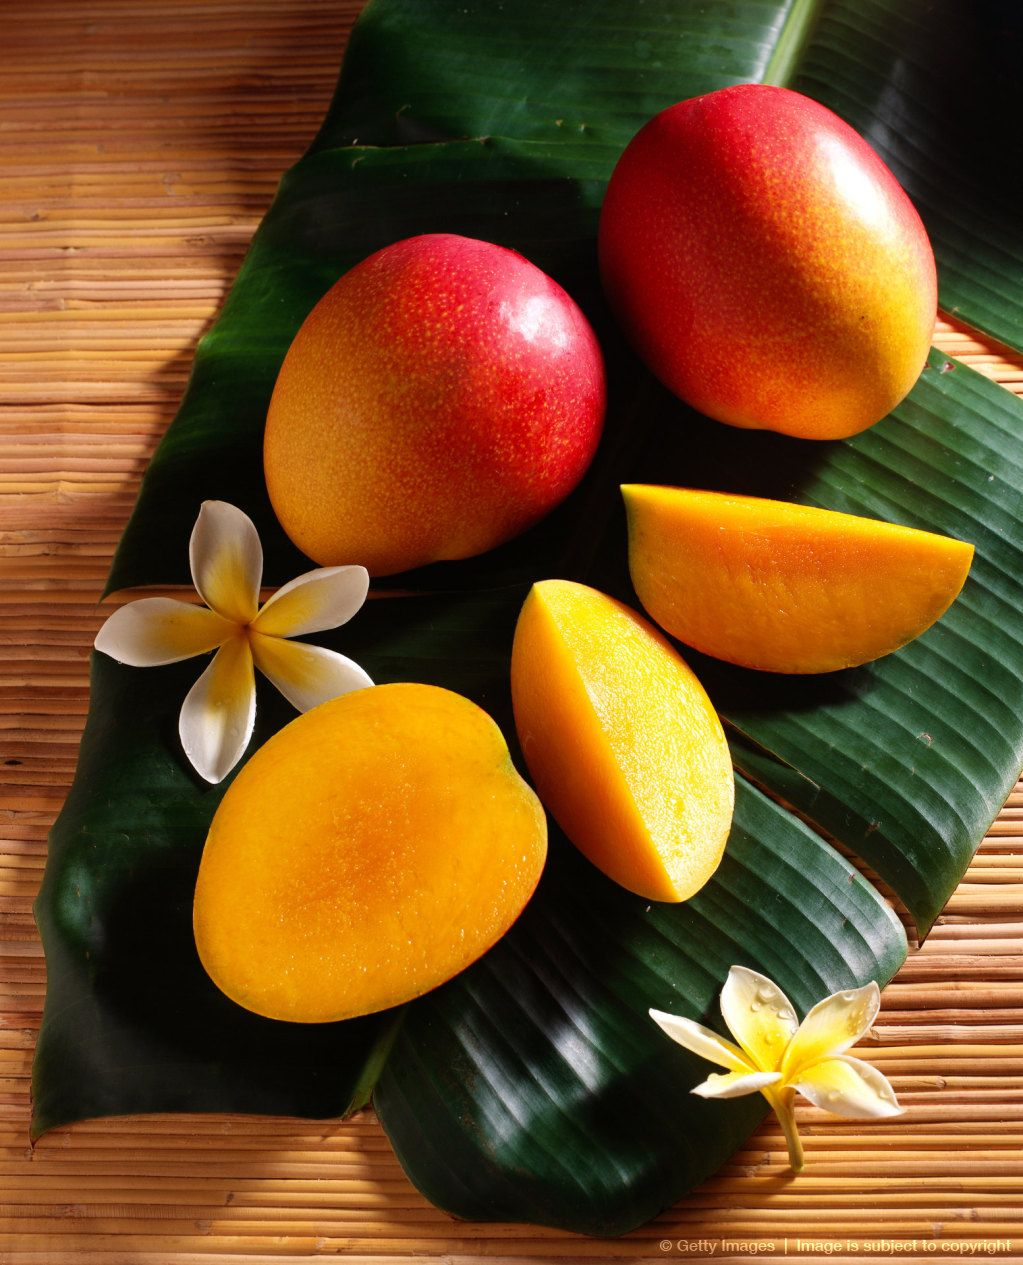 Pin By Mathilde Freville On Inspiring Photos Tropical Fruit Photography Mango Fruit Fruits And Vegetables Images